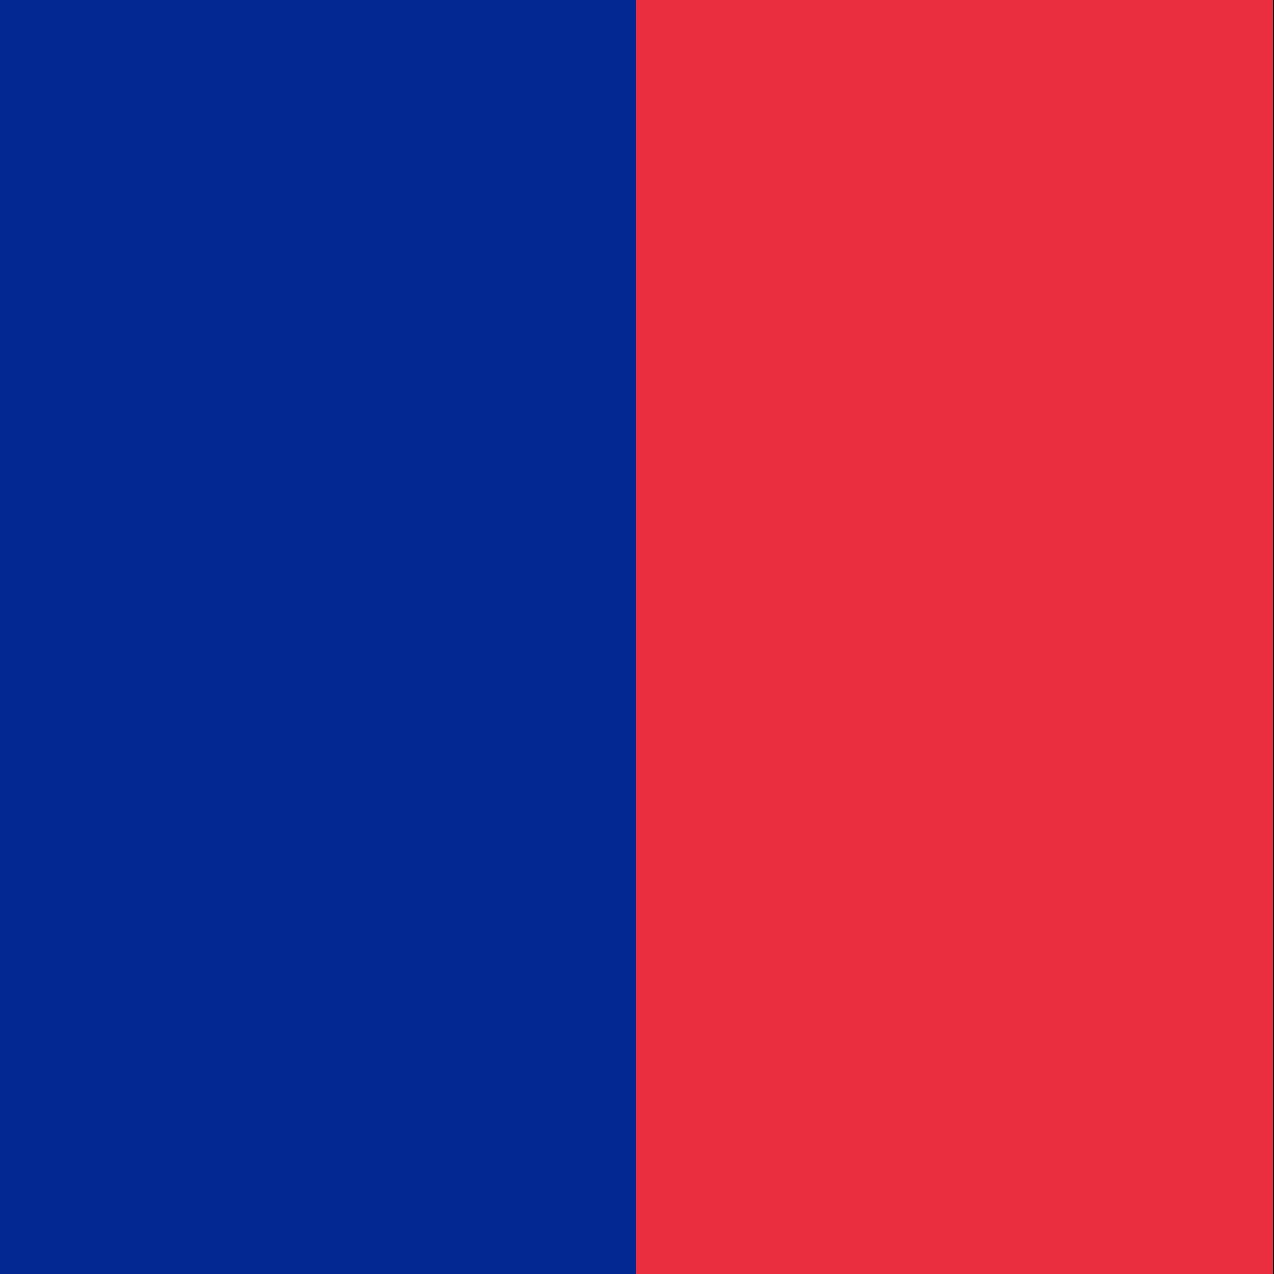 The flag of Paris